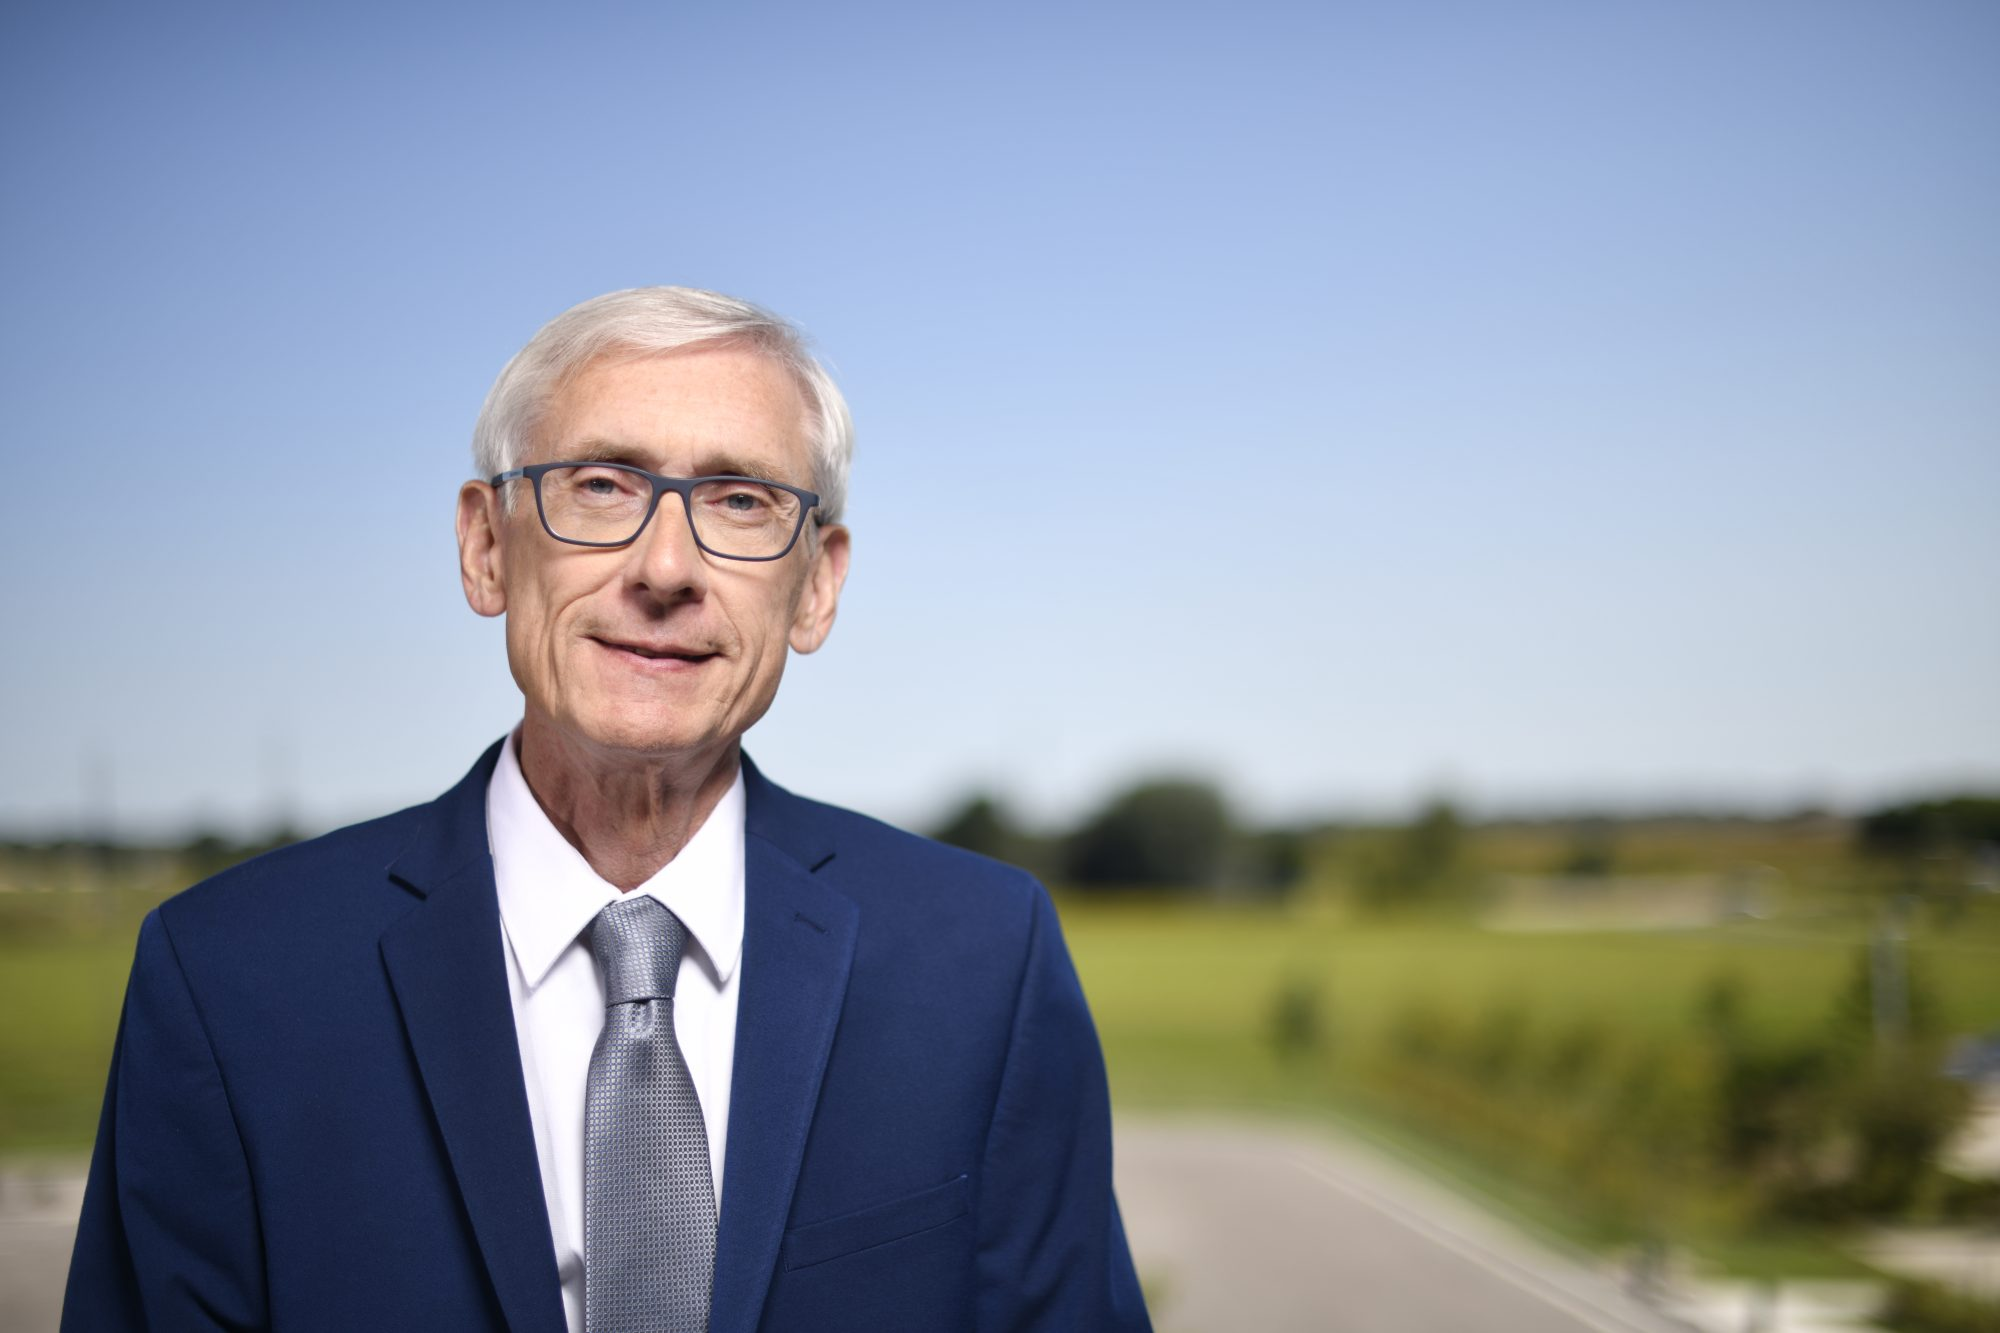 Gov. Evers, Lt. Gov. Barnes Hear from More Than 300 Wisconsinites at Virtual Budget Listening Session